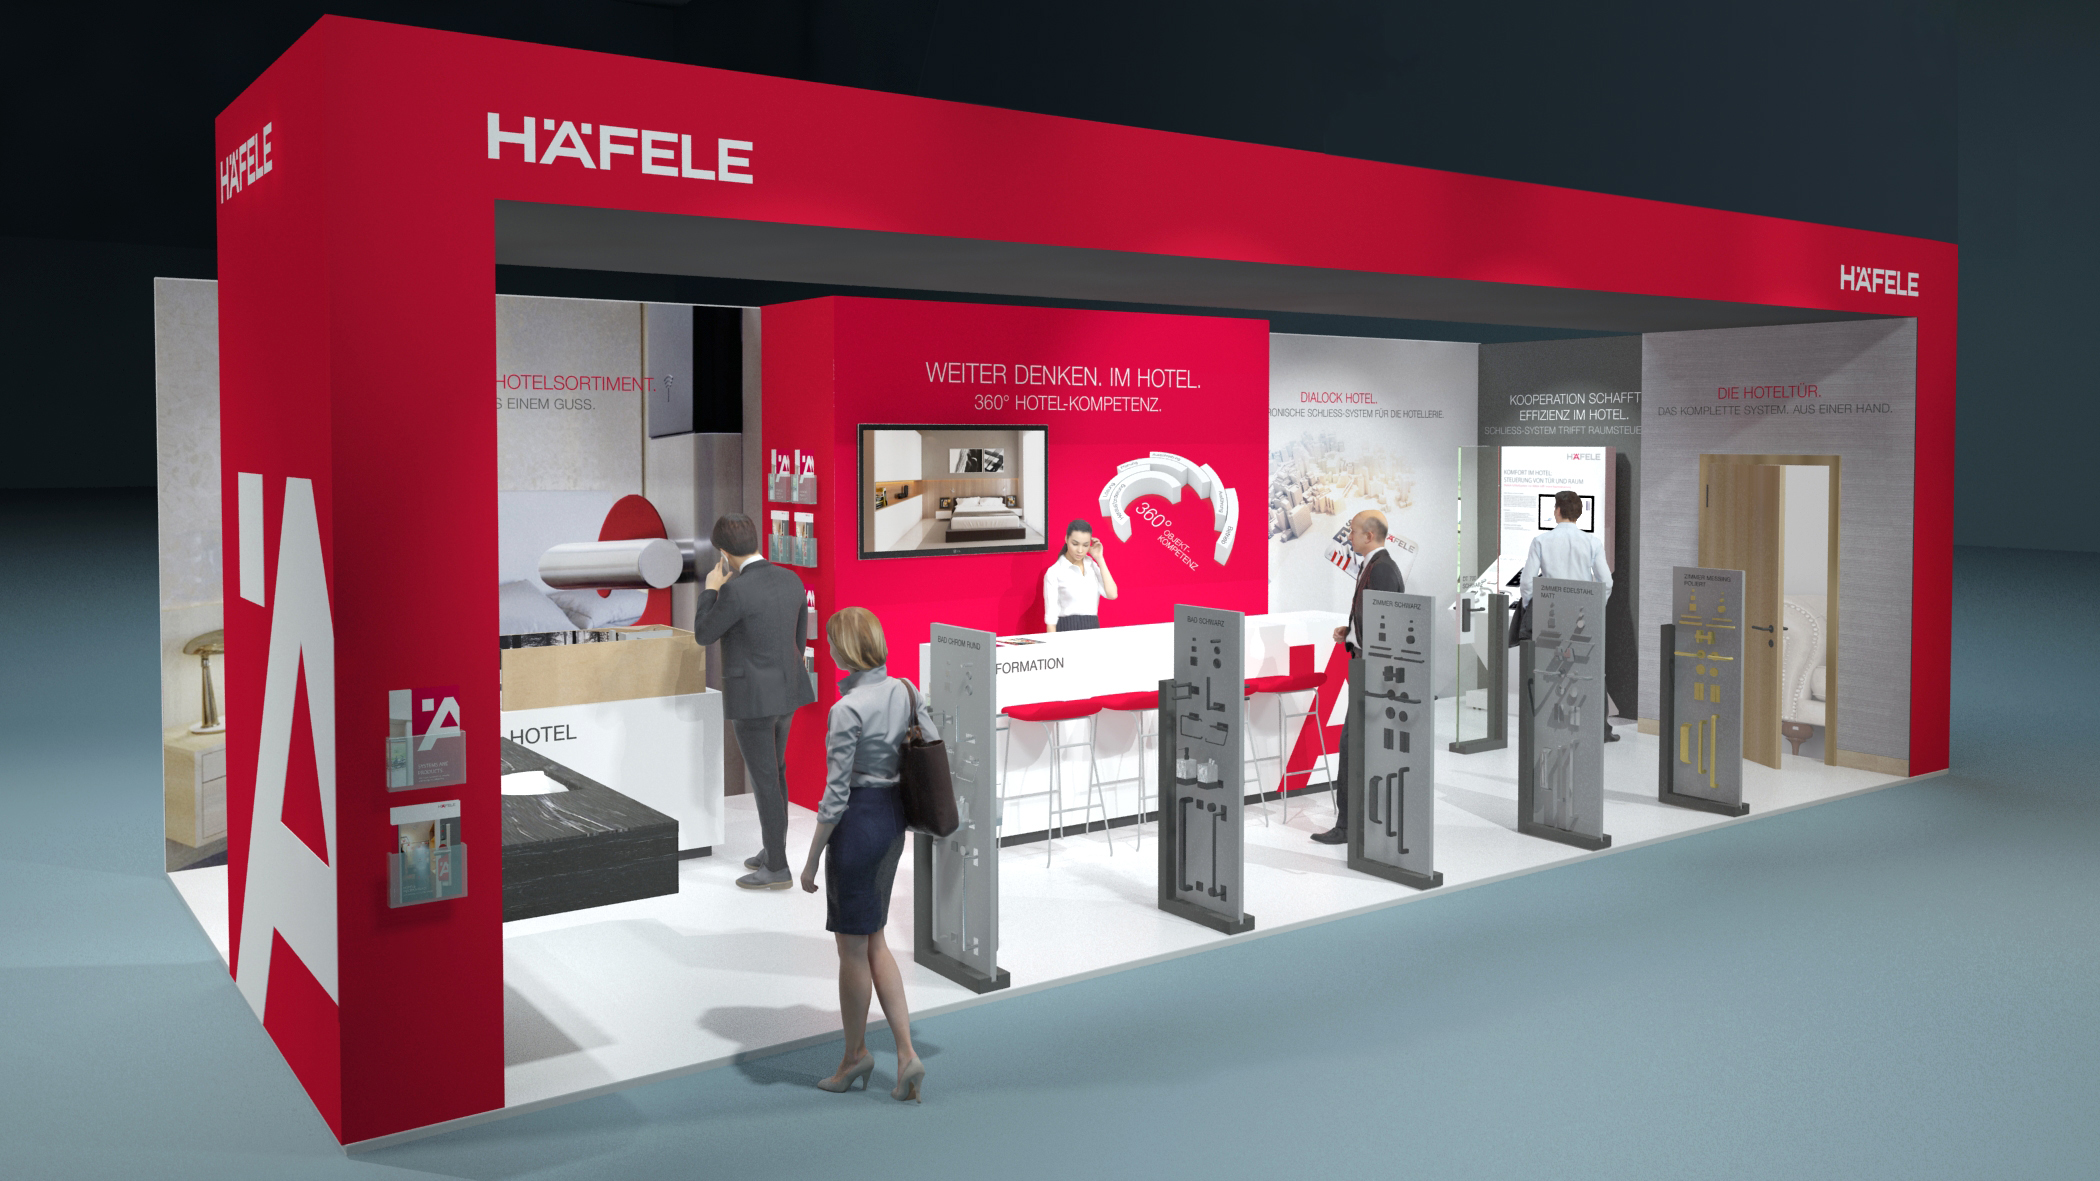 There are room designs for the hotel industry with designs and colour combinations which are bang up to date on the Häfele trade fair booth at the Intergastra in Stuttgart.